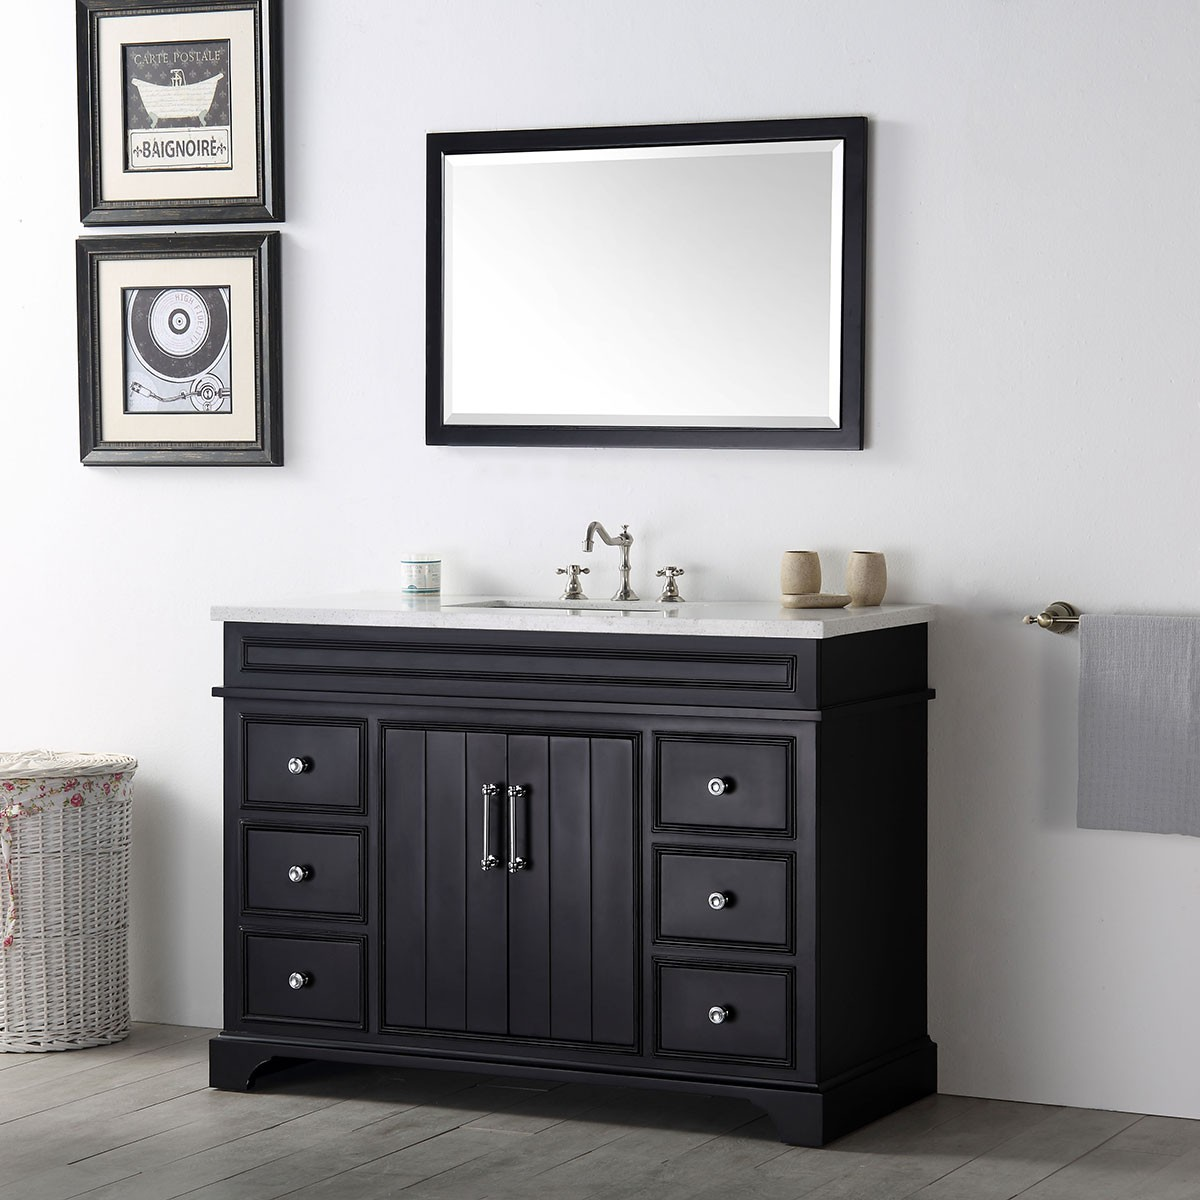 48 in bathroom vanity set without mirror dk 6748 e decoraport usa 48 in bathroom vanity set without mirror dk 6748 e geotapseo Image collections